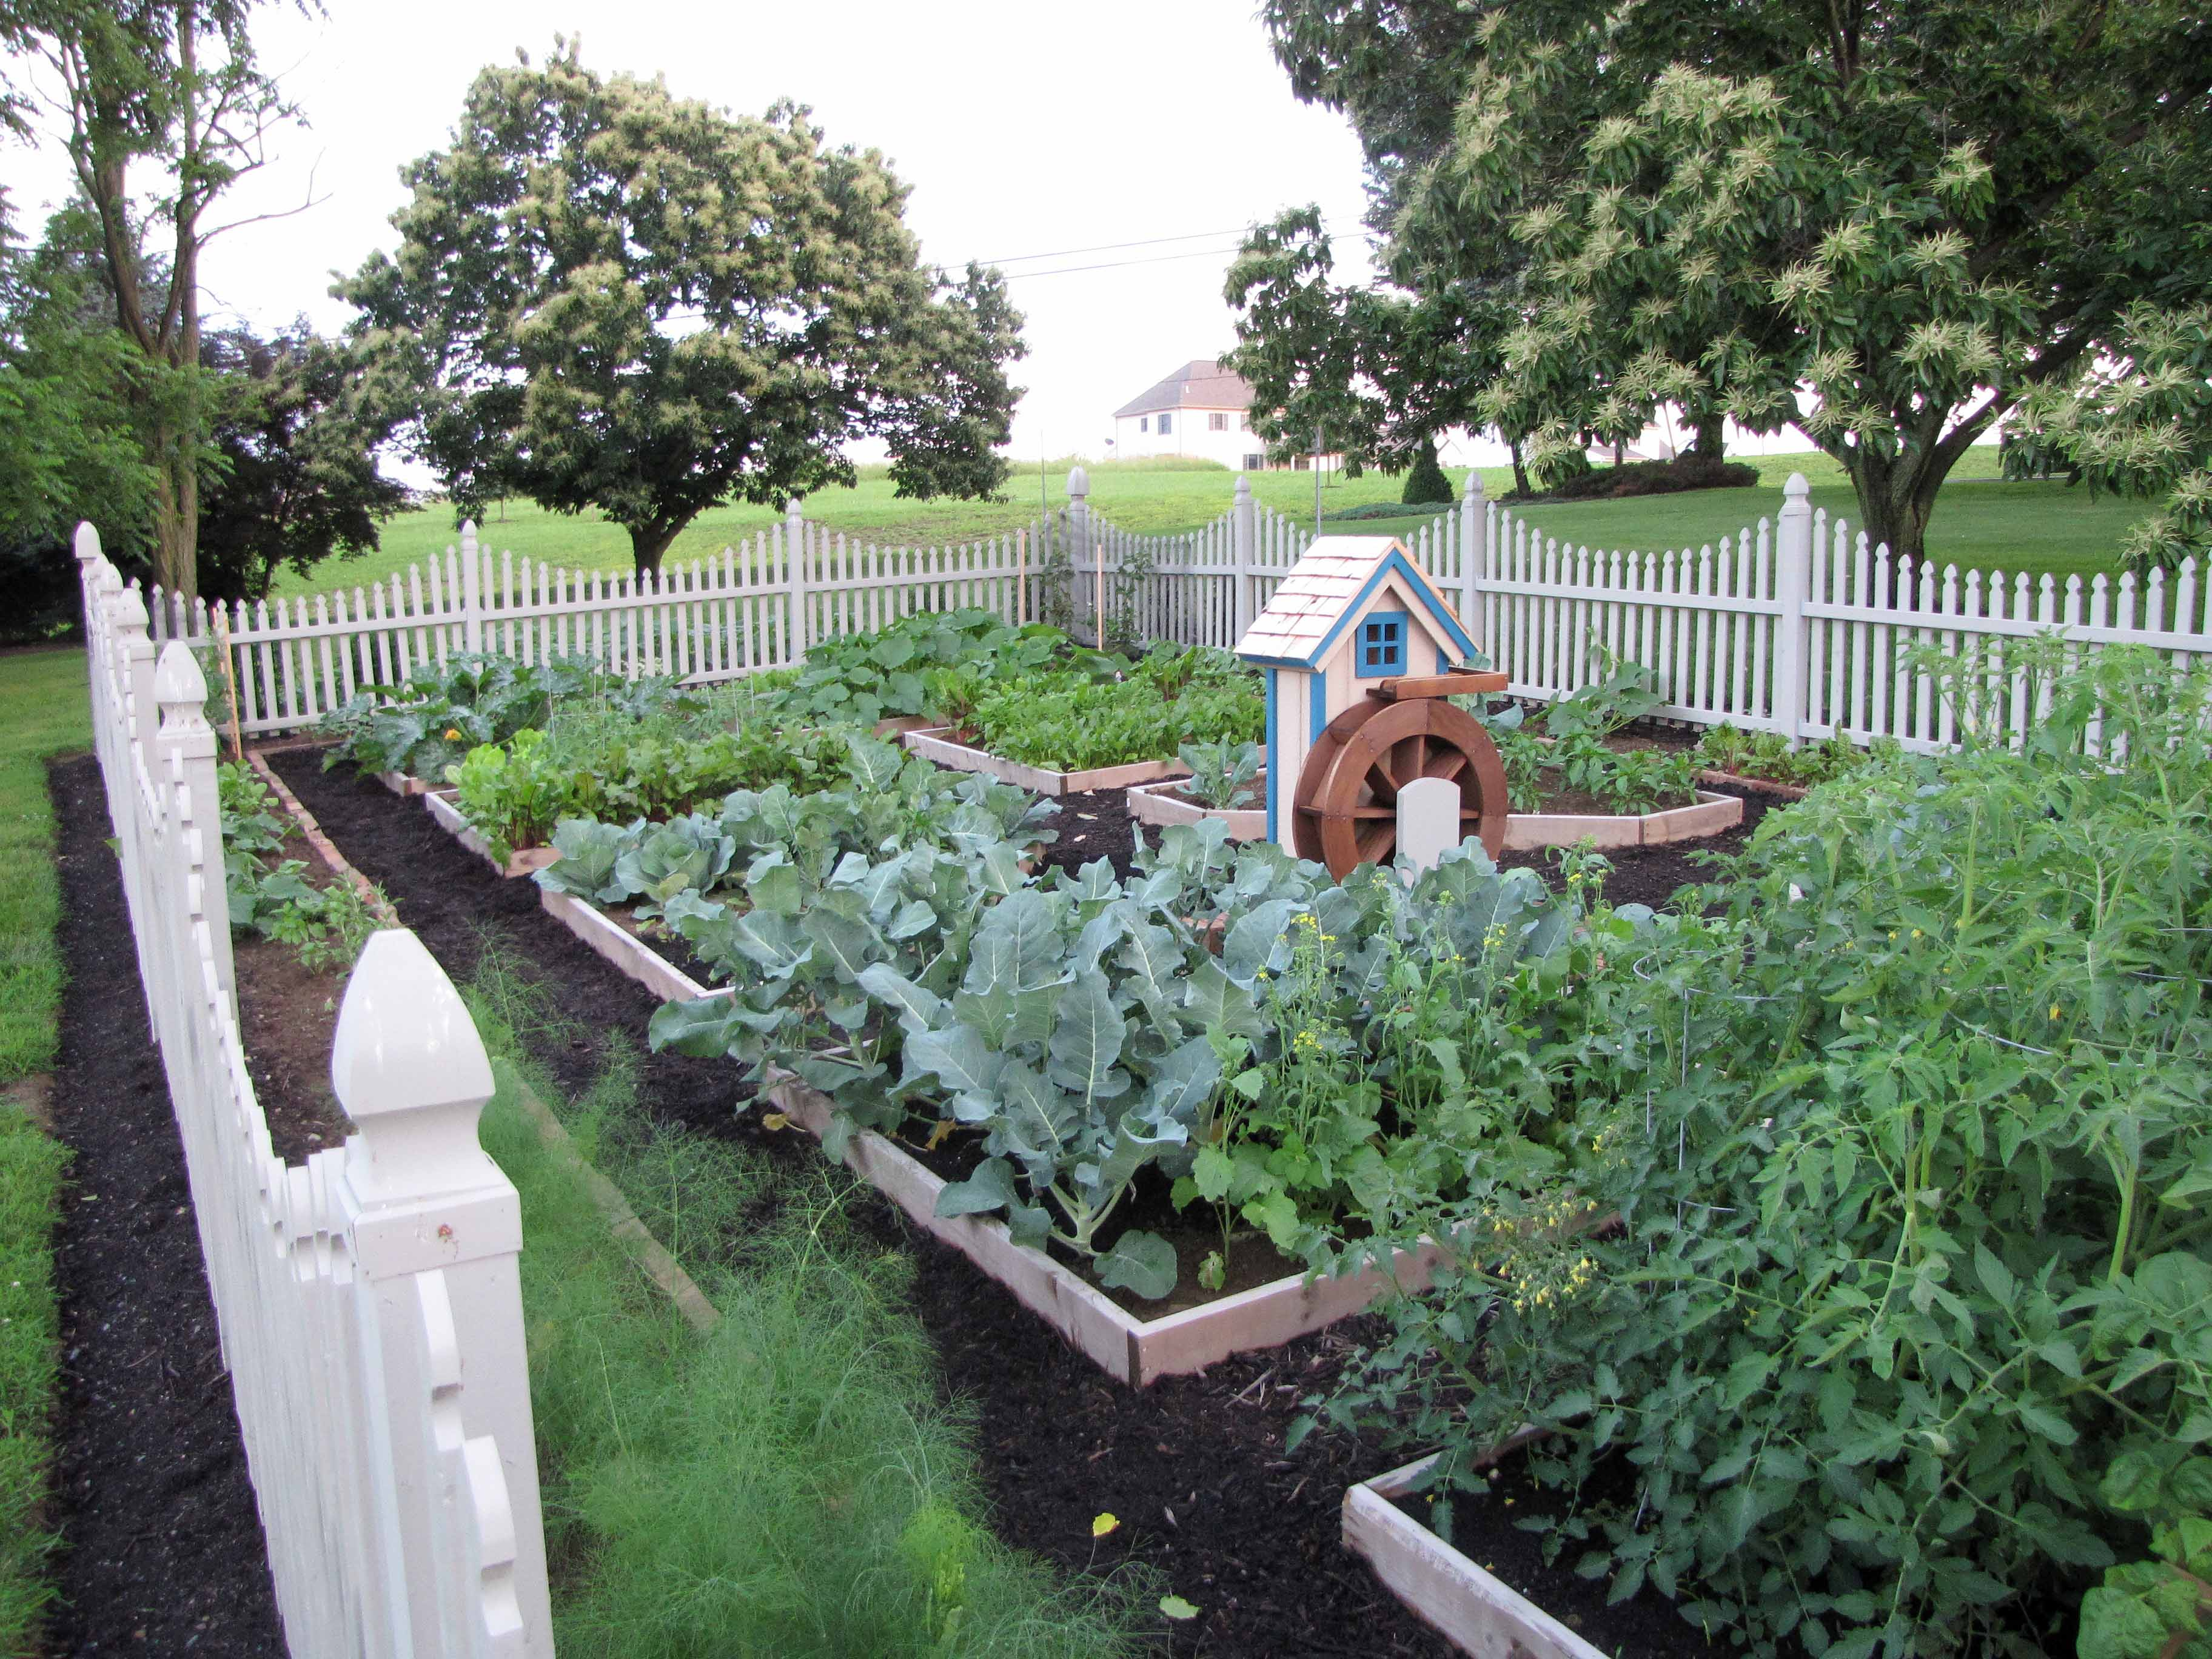 Backyard Raised Vegetable Garden Design : Garden Design Raised Beds ? Small Backyard Landscaping Ideas